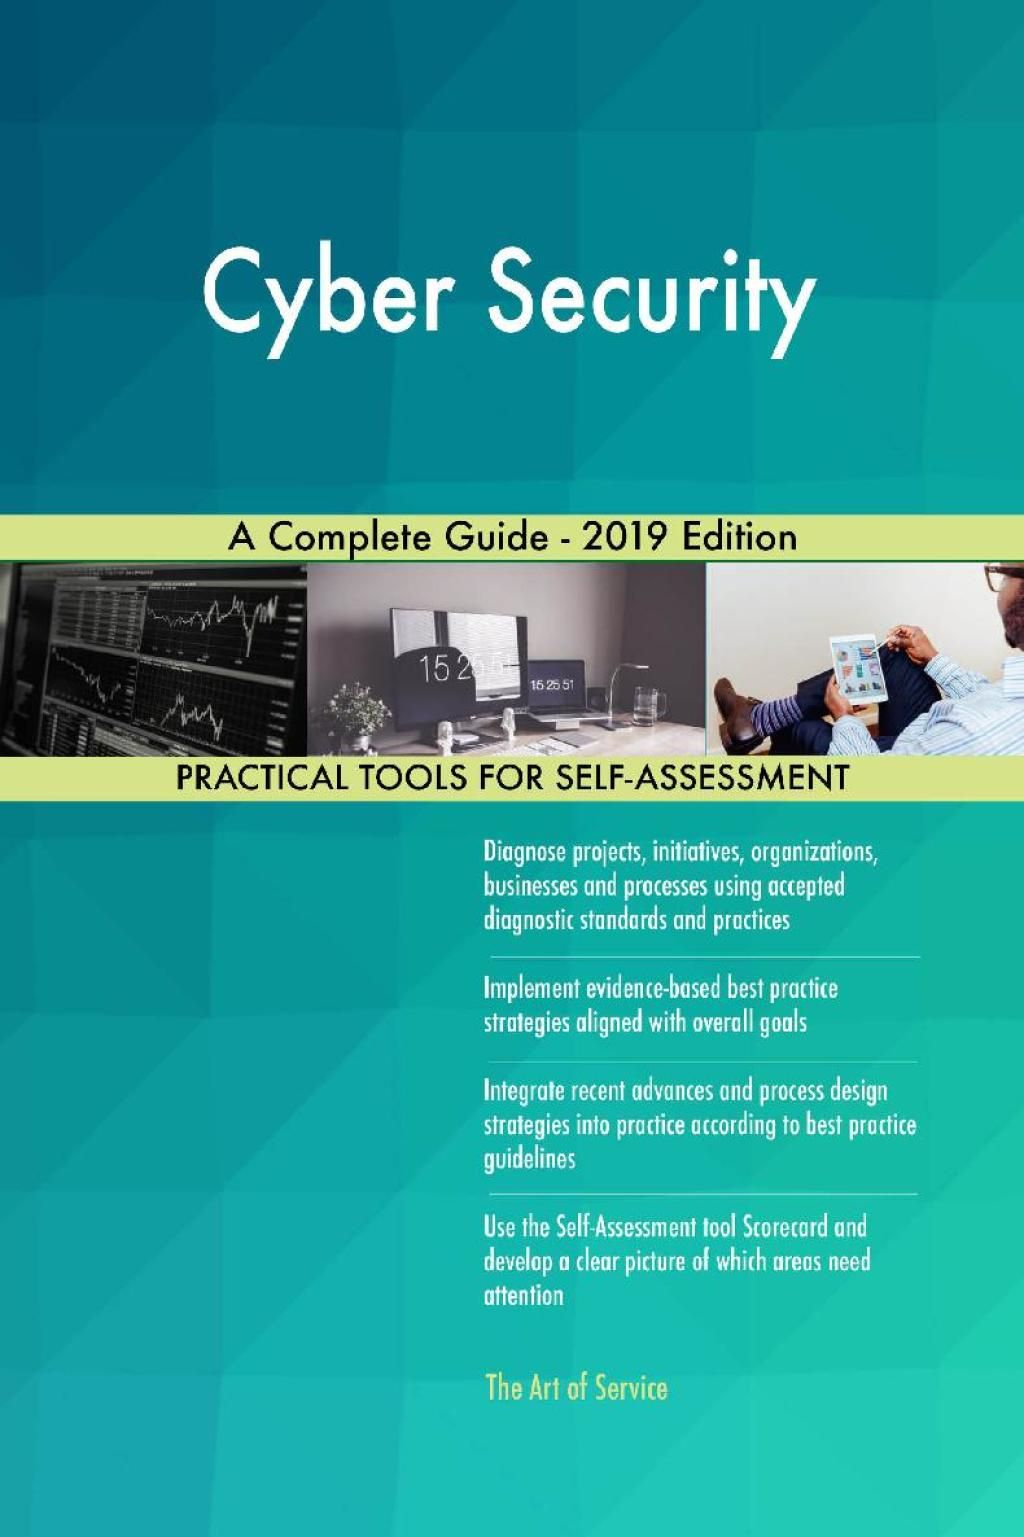 Cyber Security A Complete Guide 2019 Edition Ebook Cyber Self Assessment Design Strategy